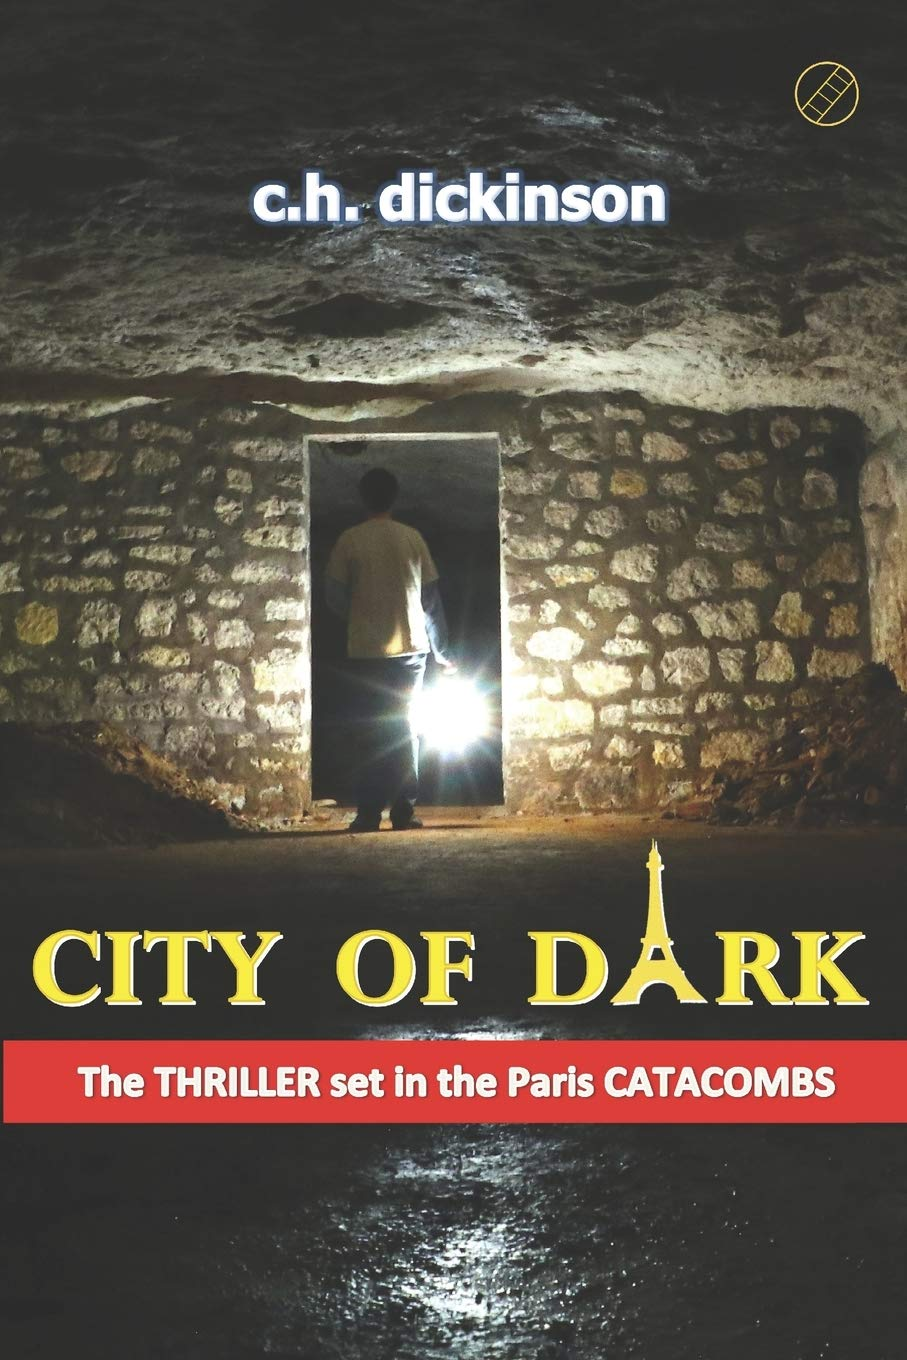 City of Dark's Ebook Image